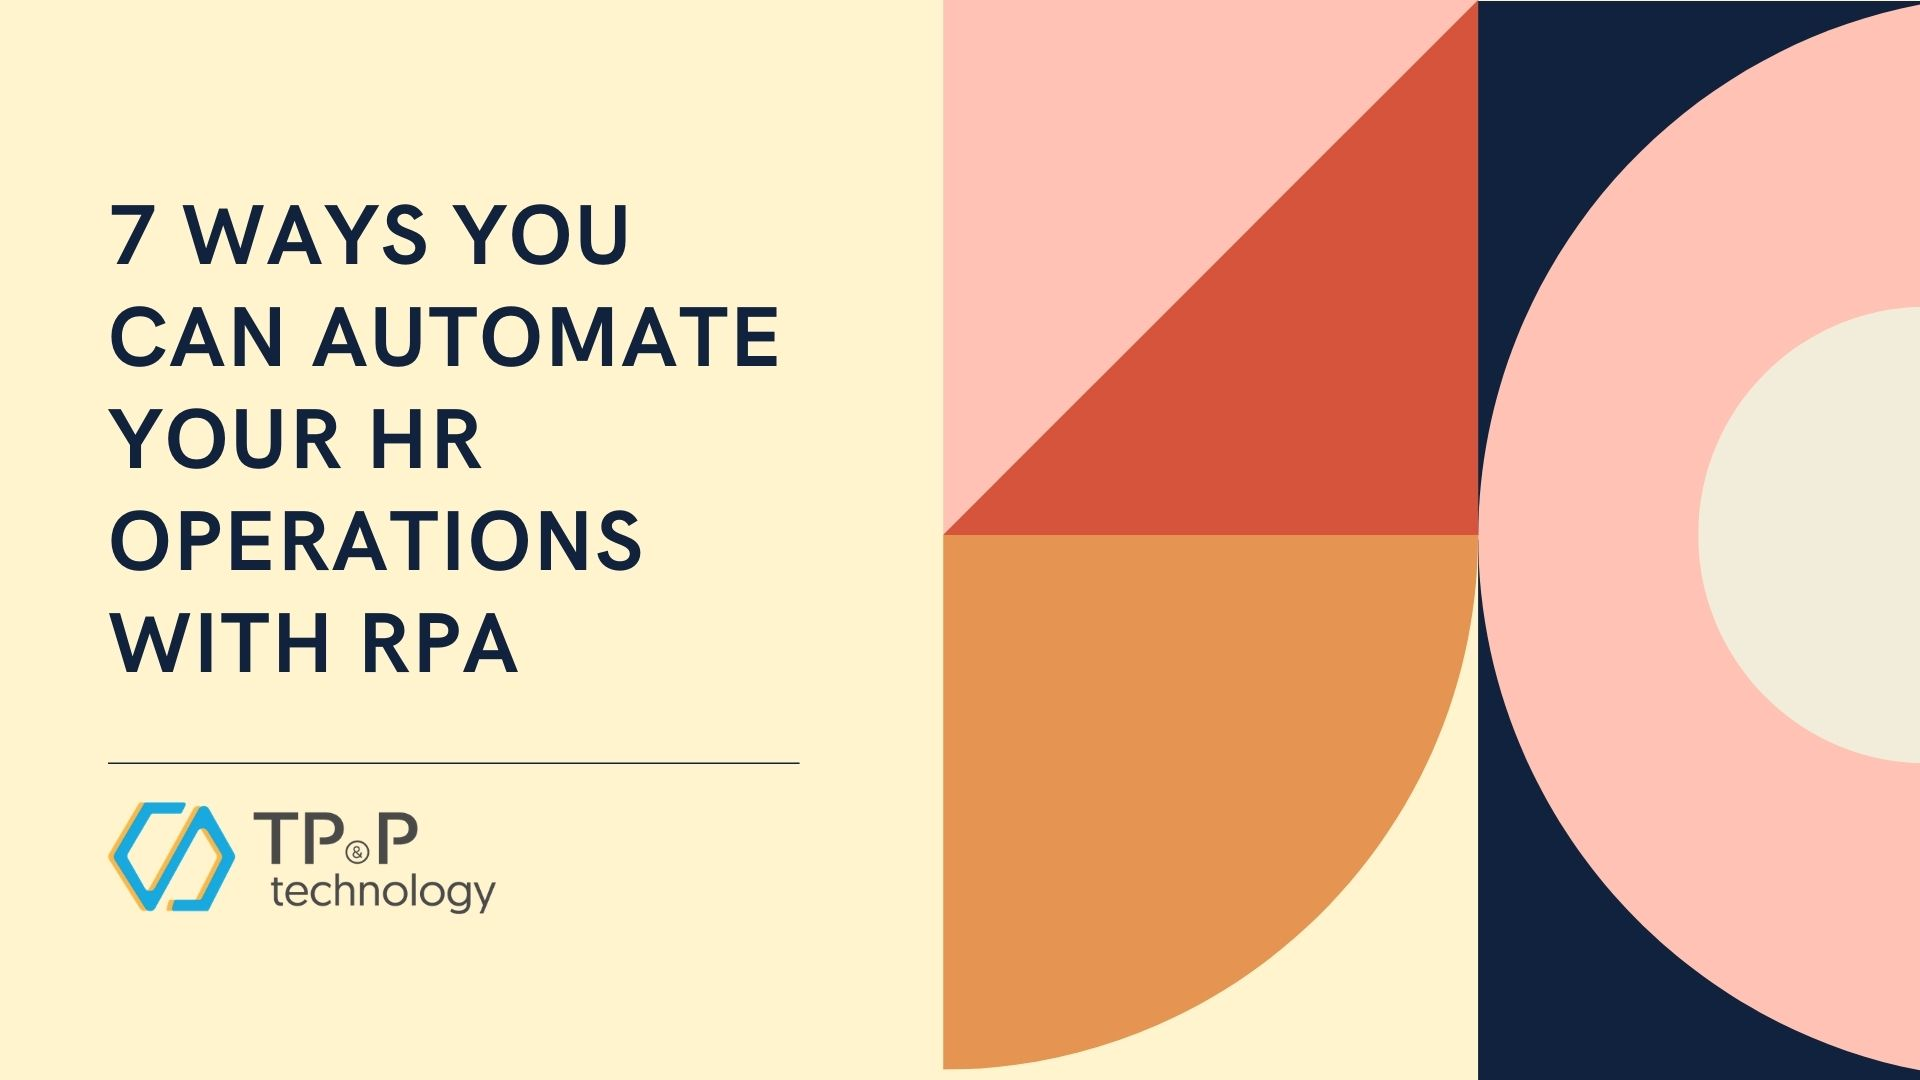 7 Ways You Can Automate Your HR Operations With RPA